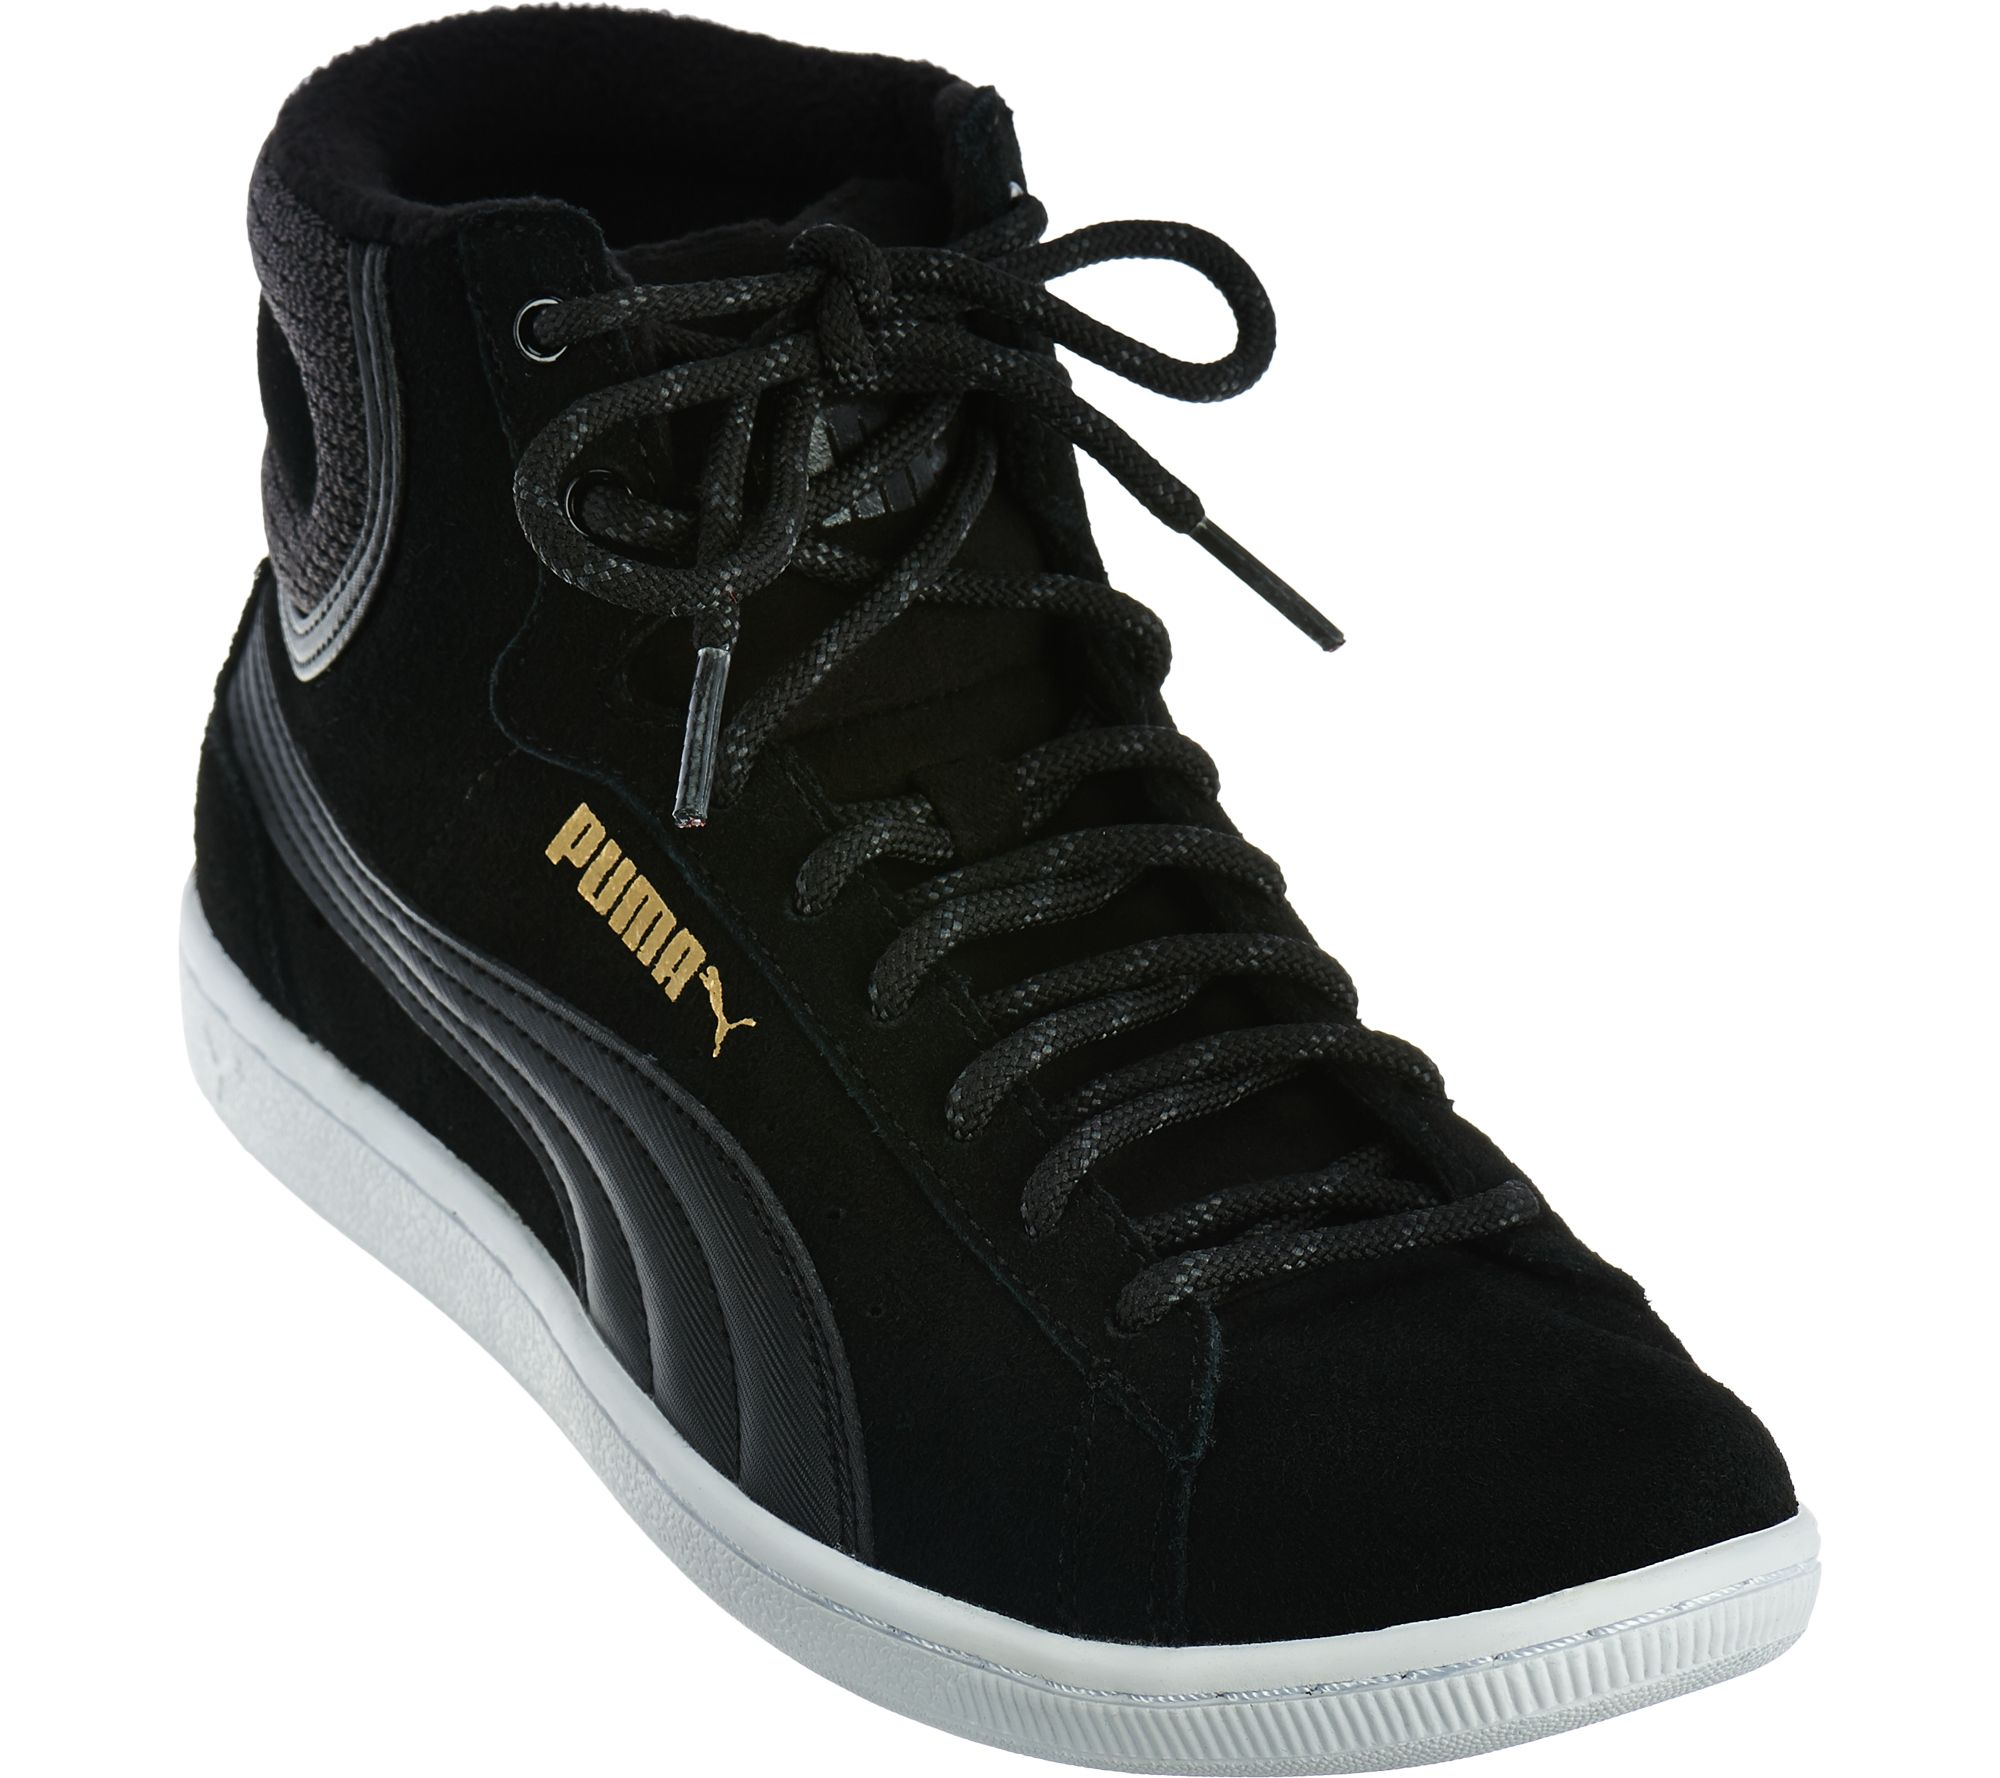 516096c4ff50 PUMA Suede Hightop Lace-up Sneakers - Vikky Mid - Page 1 — QVC.com